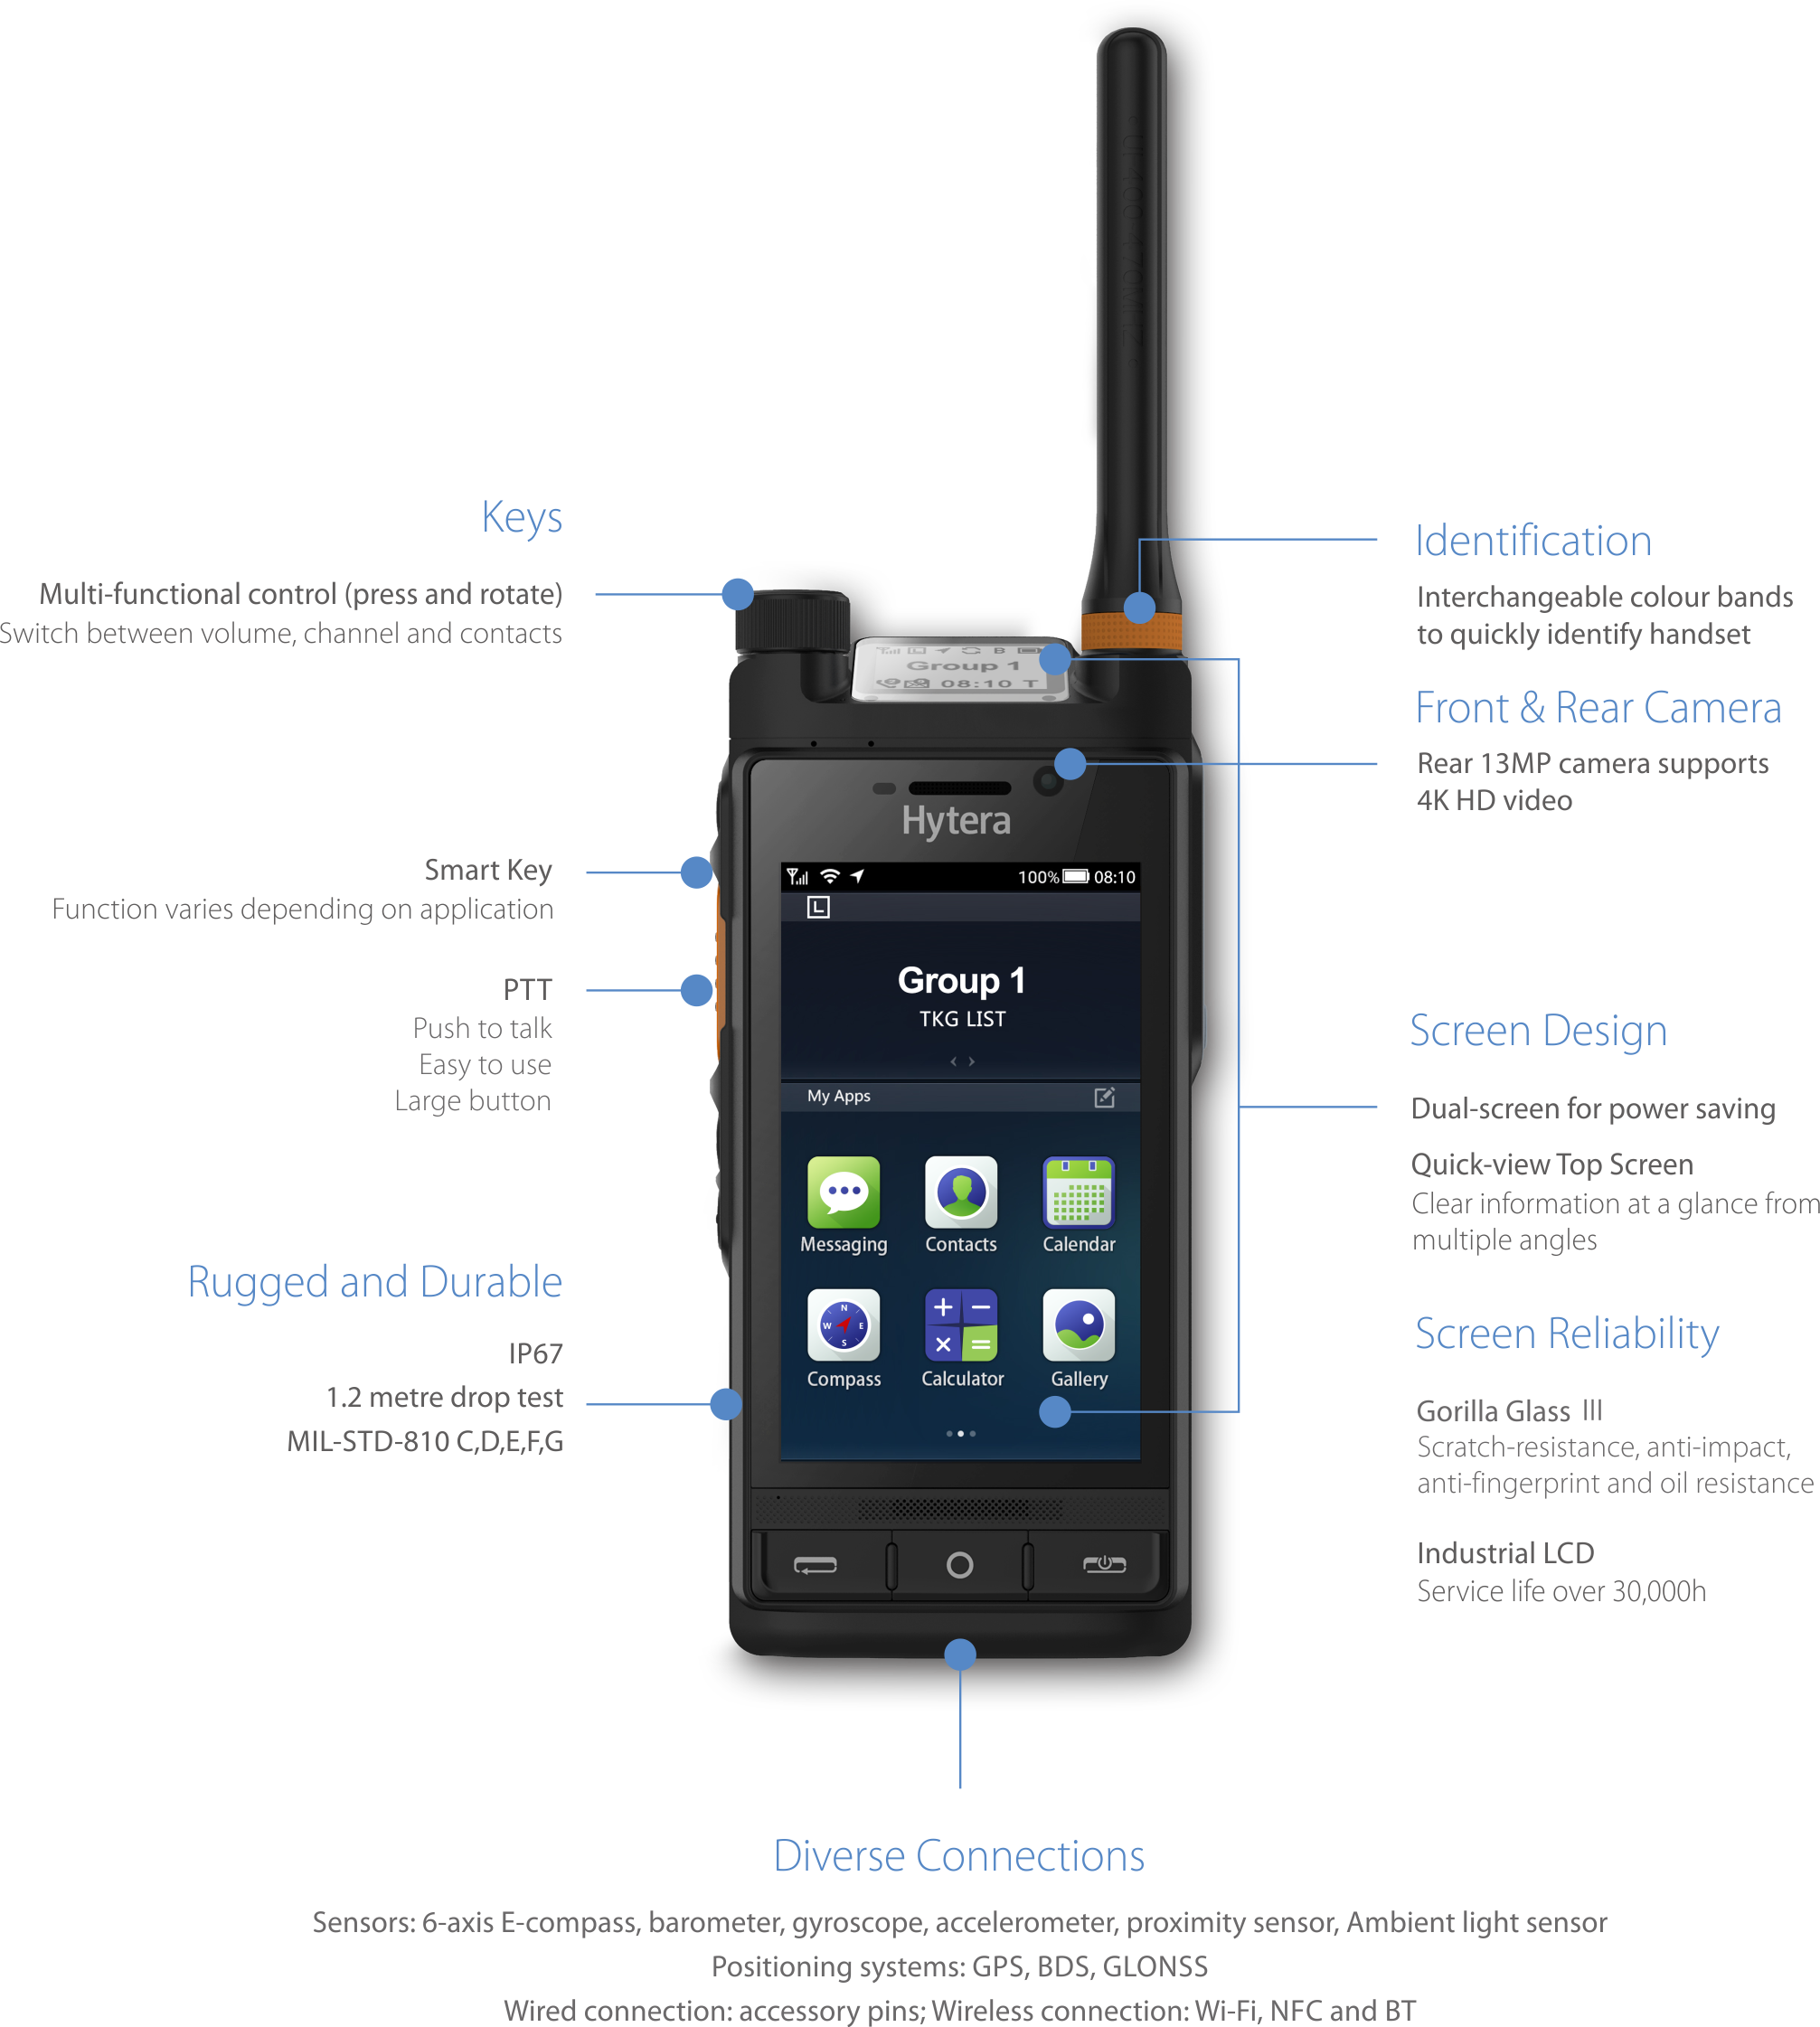 BrandMeister DMR supports the new Hytera PDC-760 LTE/3G/Wifi radio